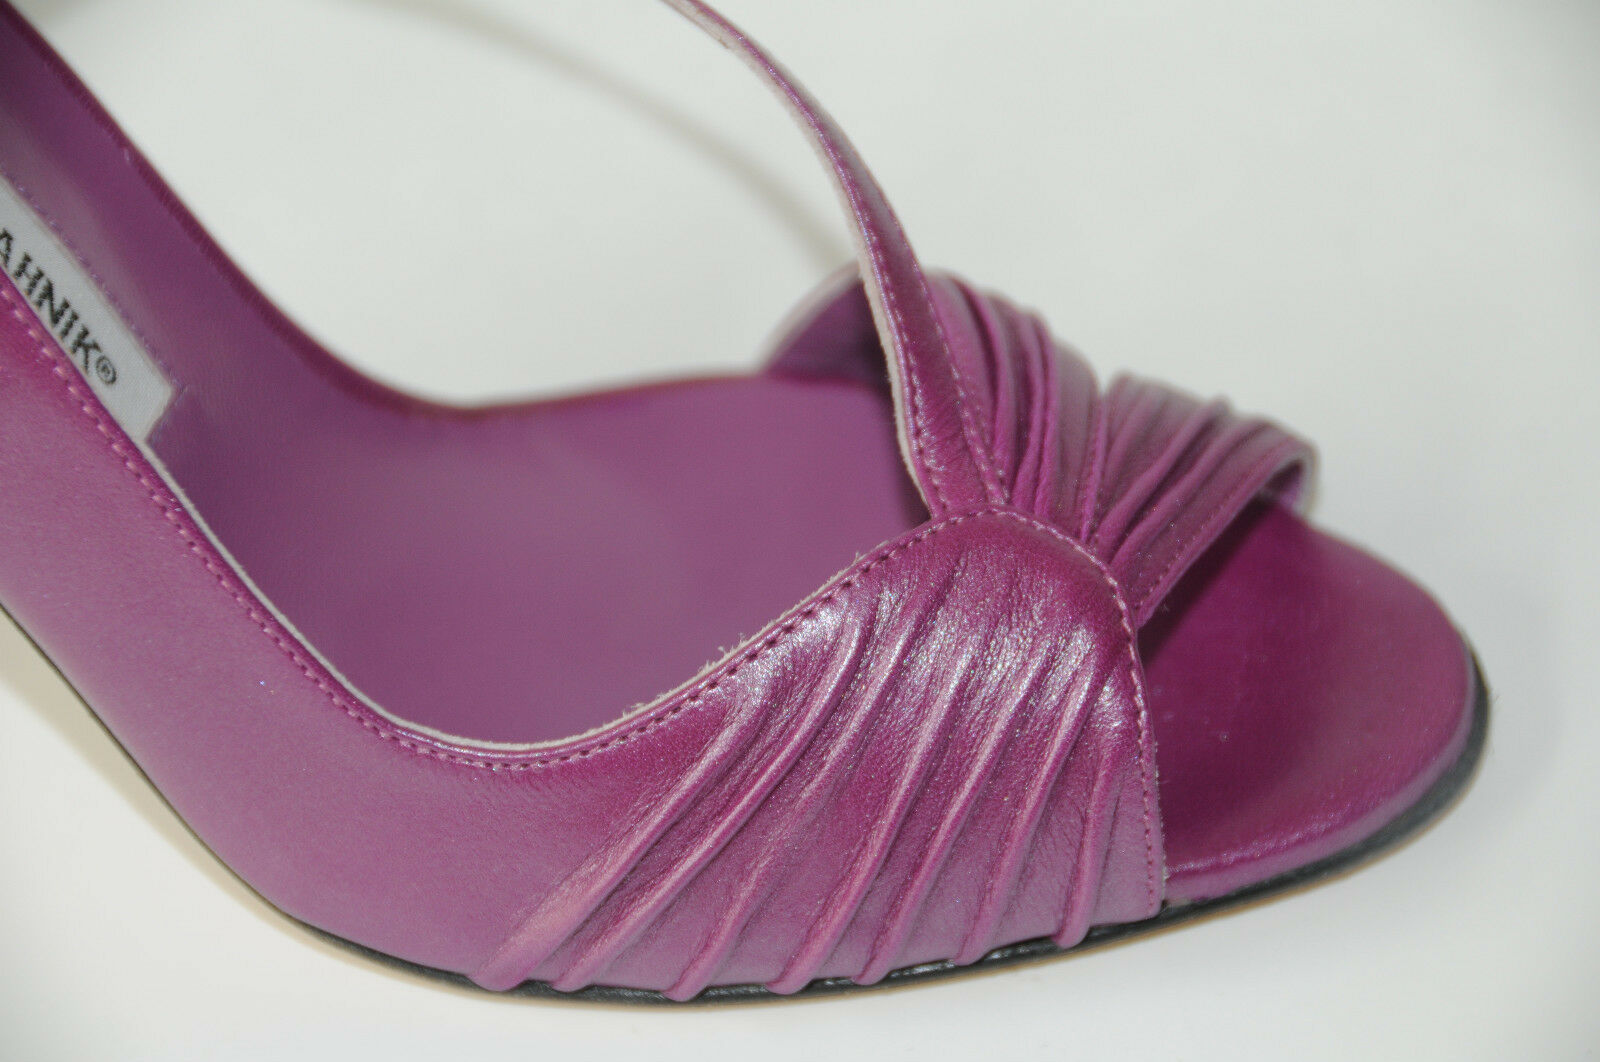 $925 New Manolo Blahnik Riccia Riccia Riccia 105 Purple Sheen  Leder schuhes Sandals 40.5 62c599